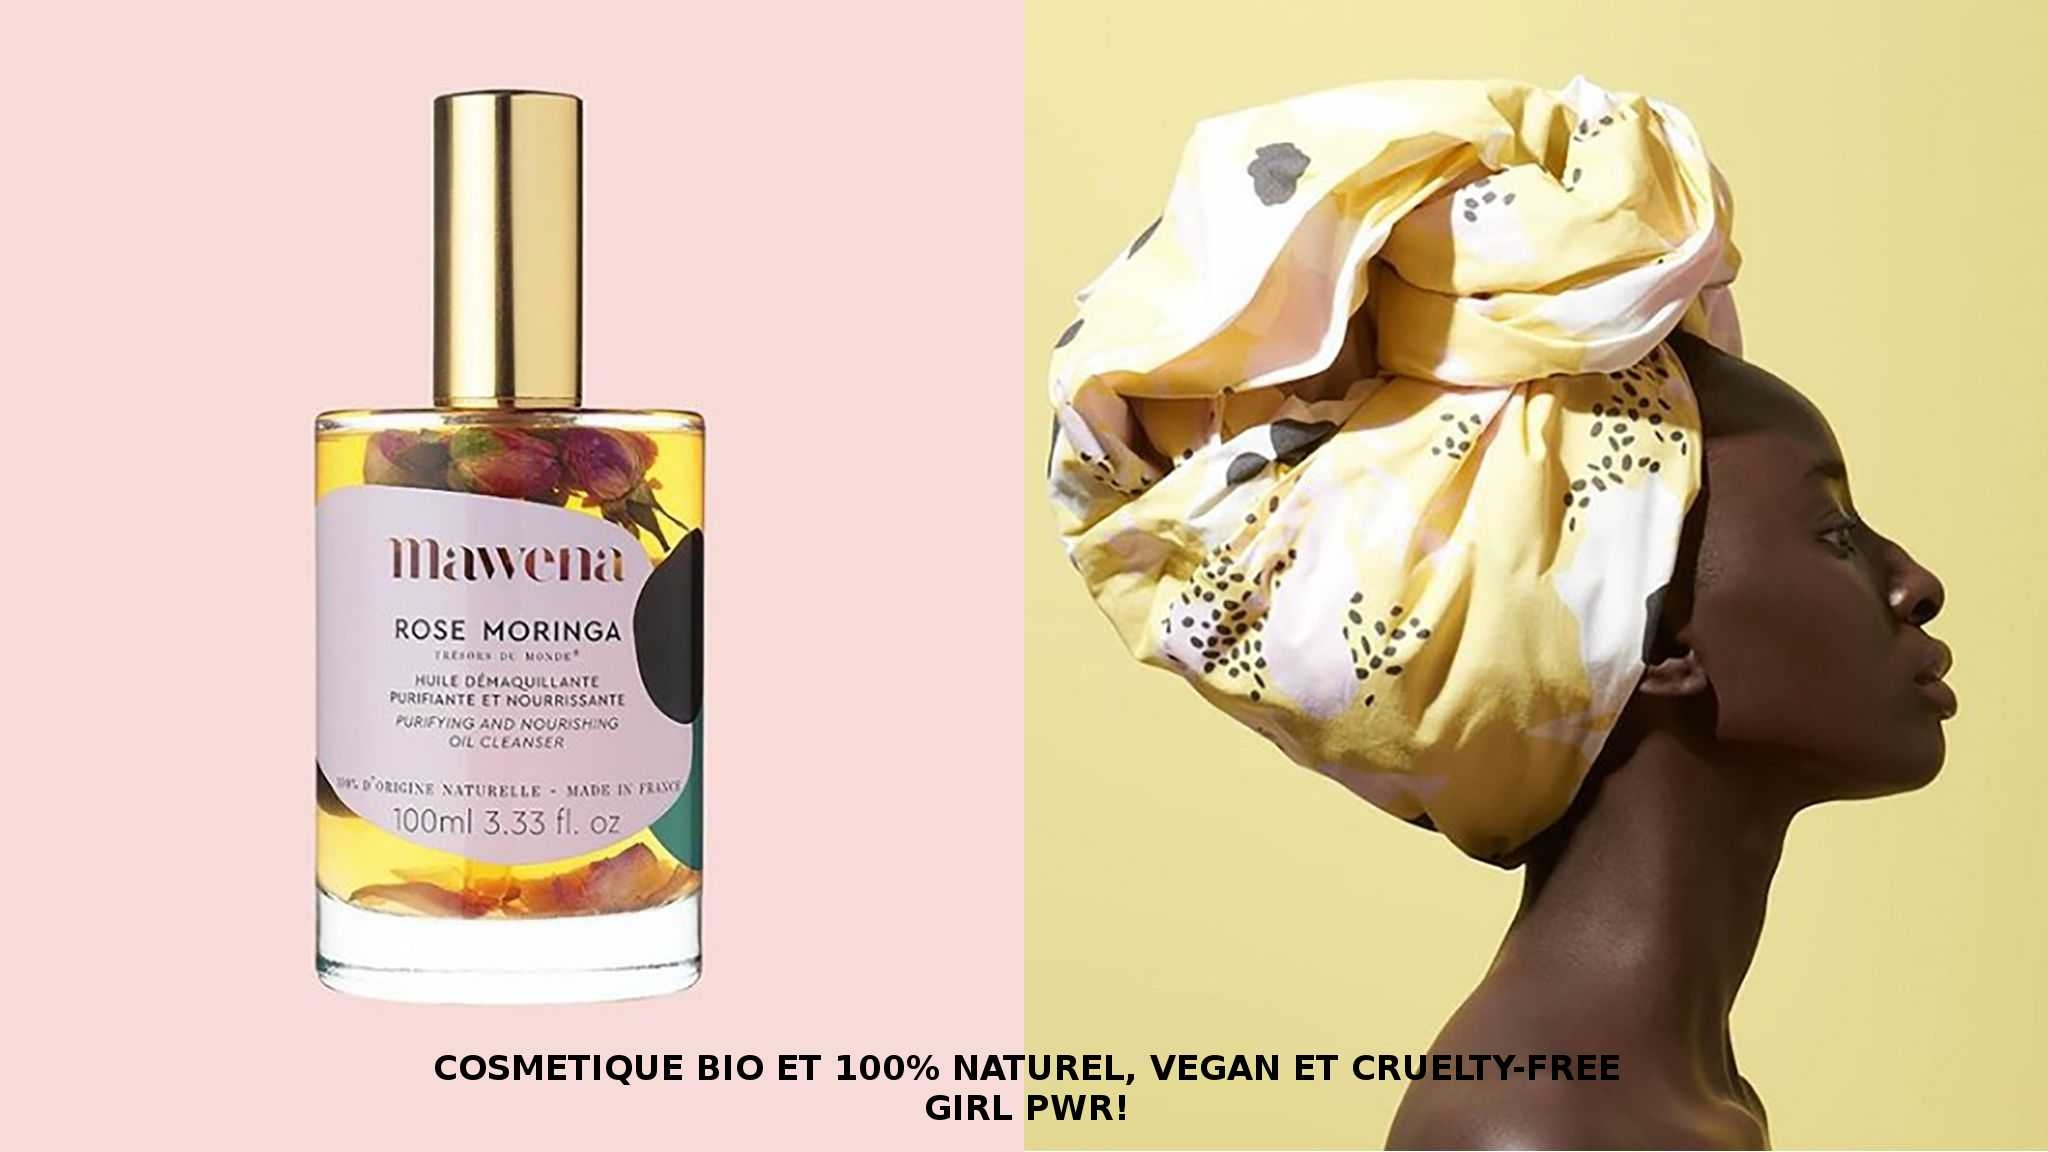 MAWENA - COSMETIQUE BIO NATUREL VEGAN